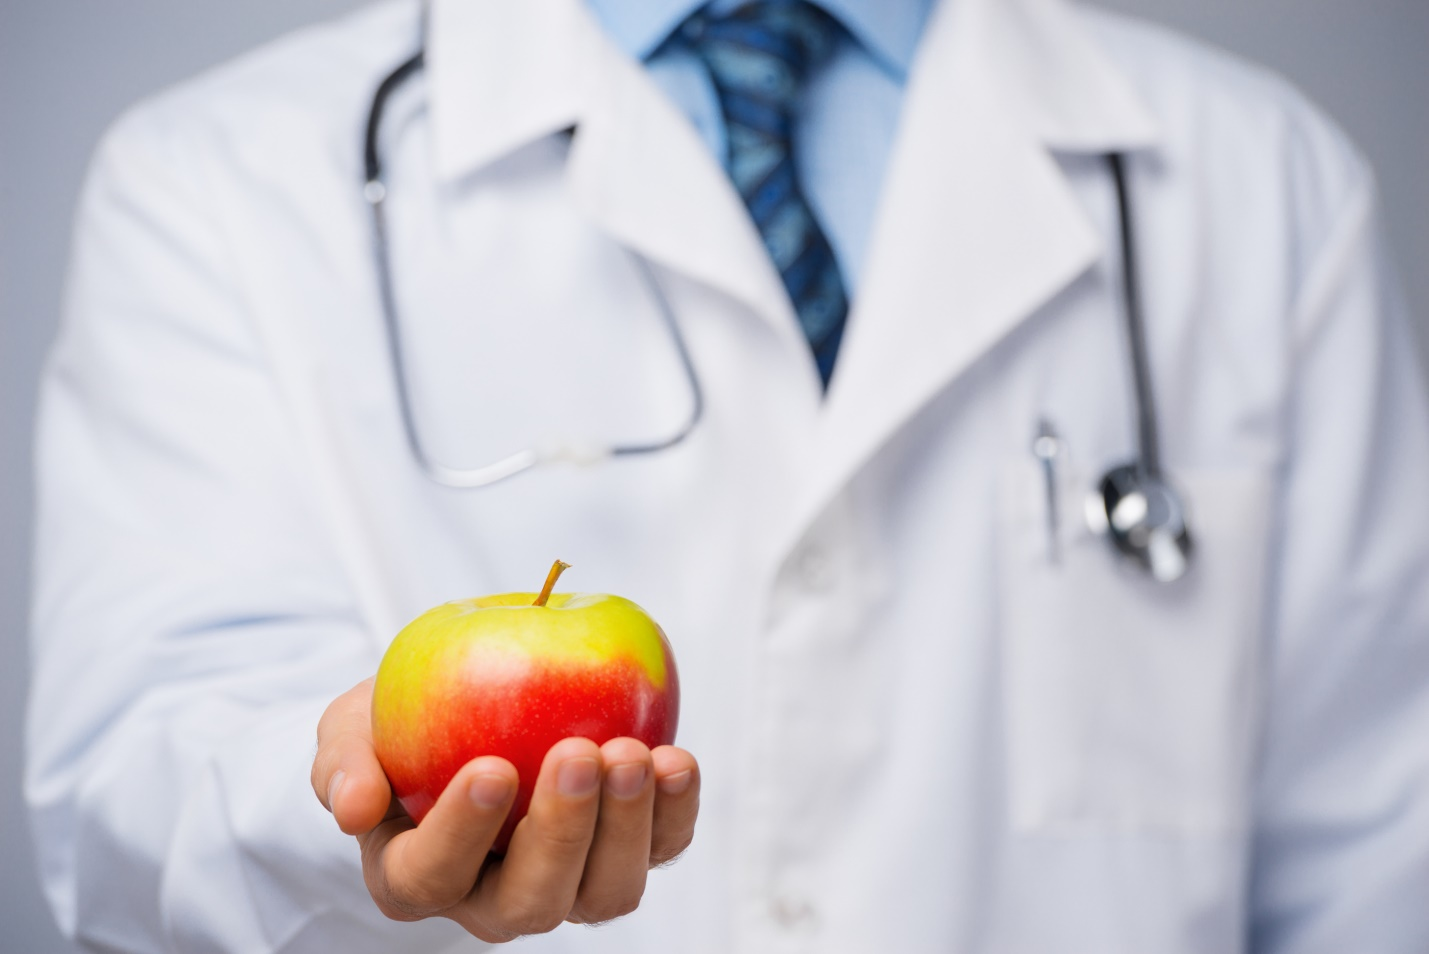 An apple a day may not keep the doctor away, but it's a healthy choice anyway - Harvard Health Blog - Harvard Health Publishing